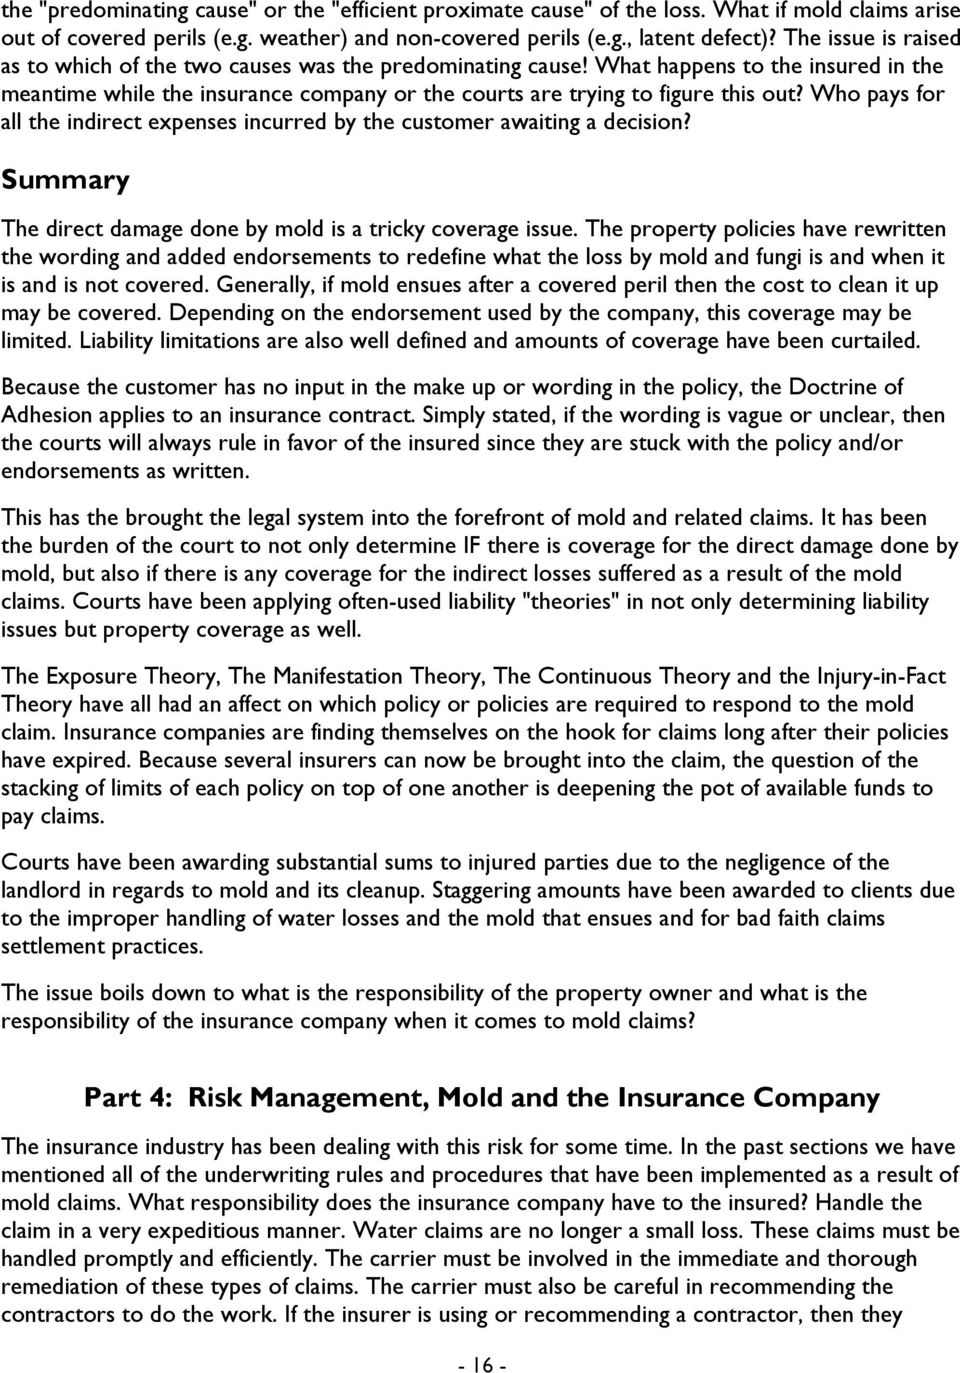 property all risk insurance lm7 wording pdf